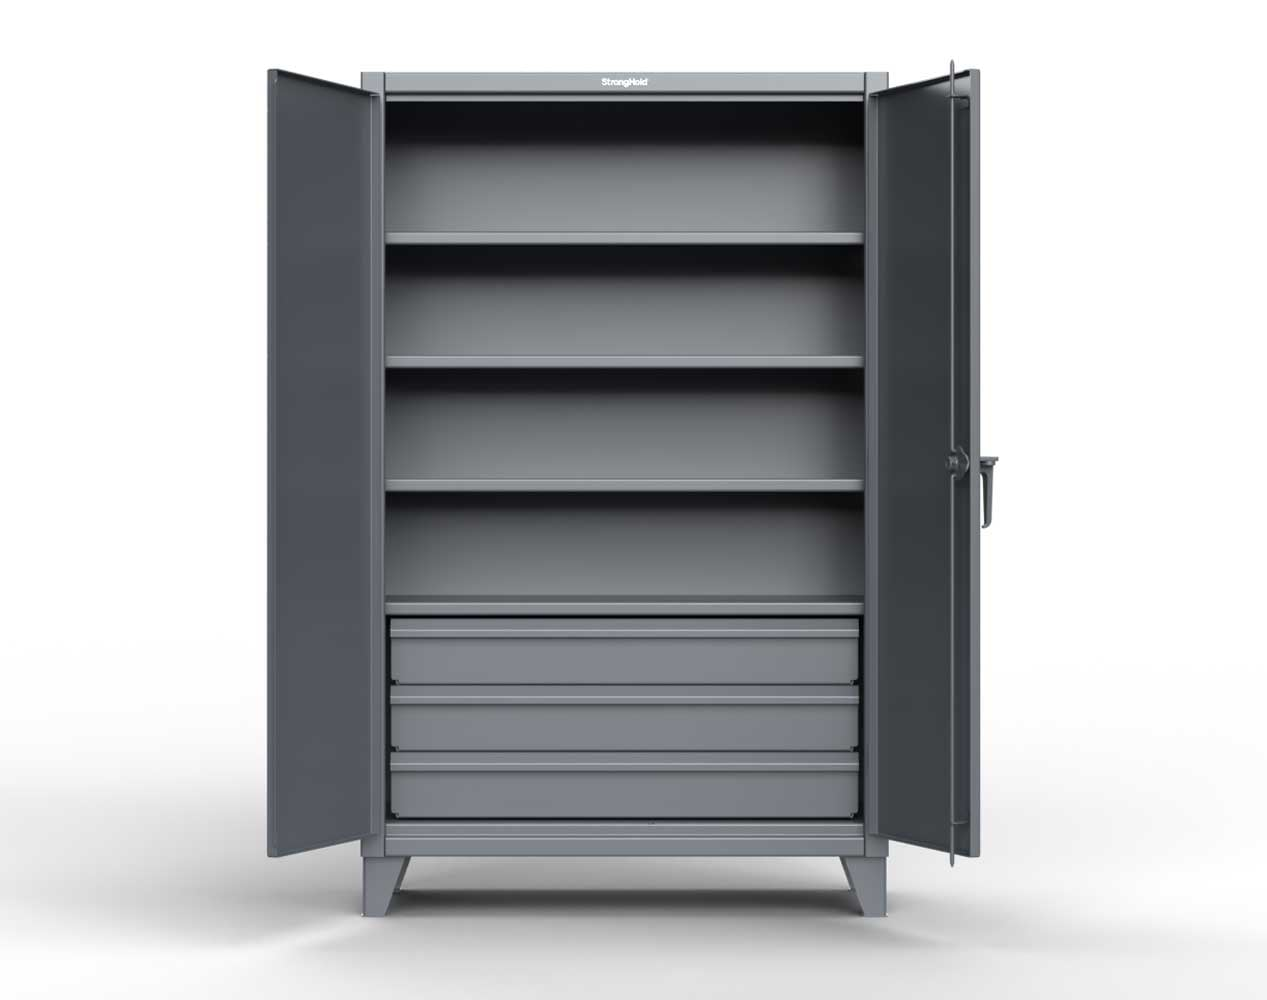 Extra Heavy Duty 12 GA Cabinet with 3 Drawers, 4 Shelves – 36 In. W x 24 In. D x 78 In. H